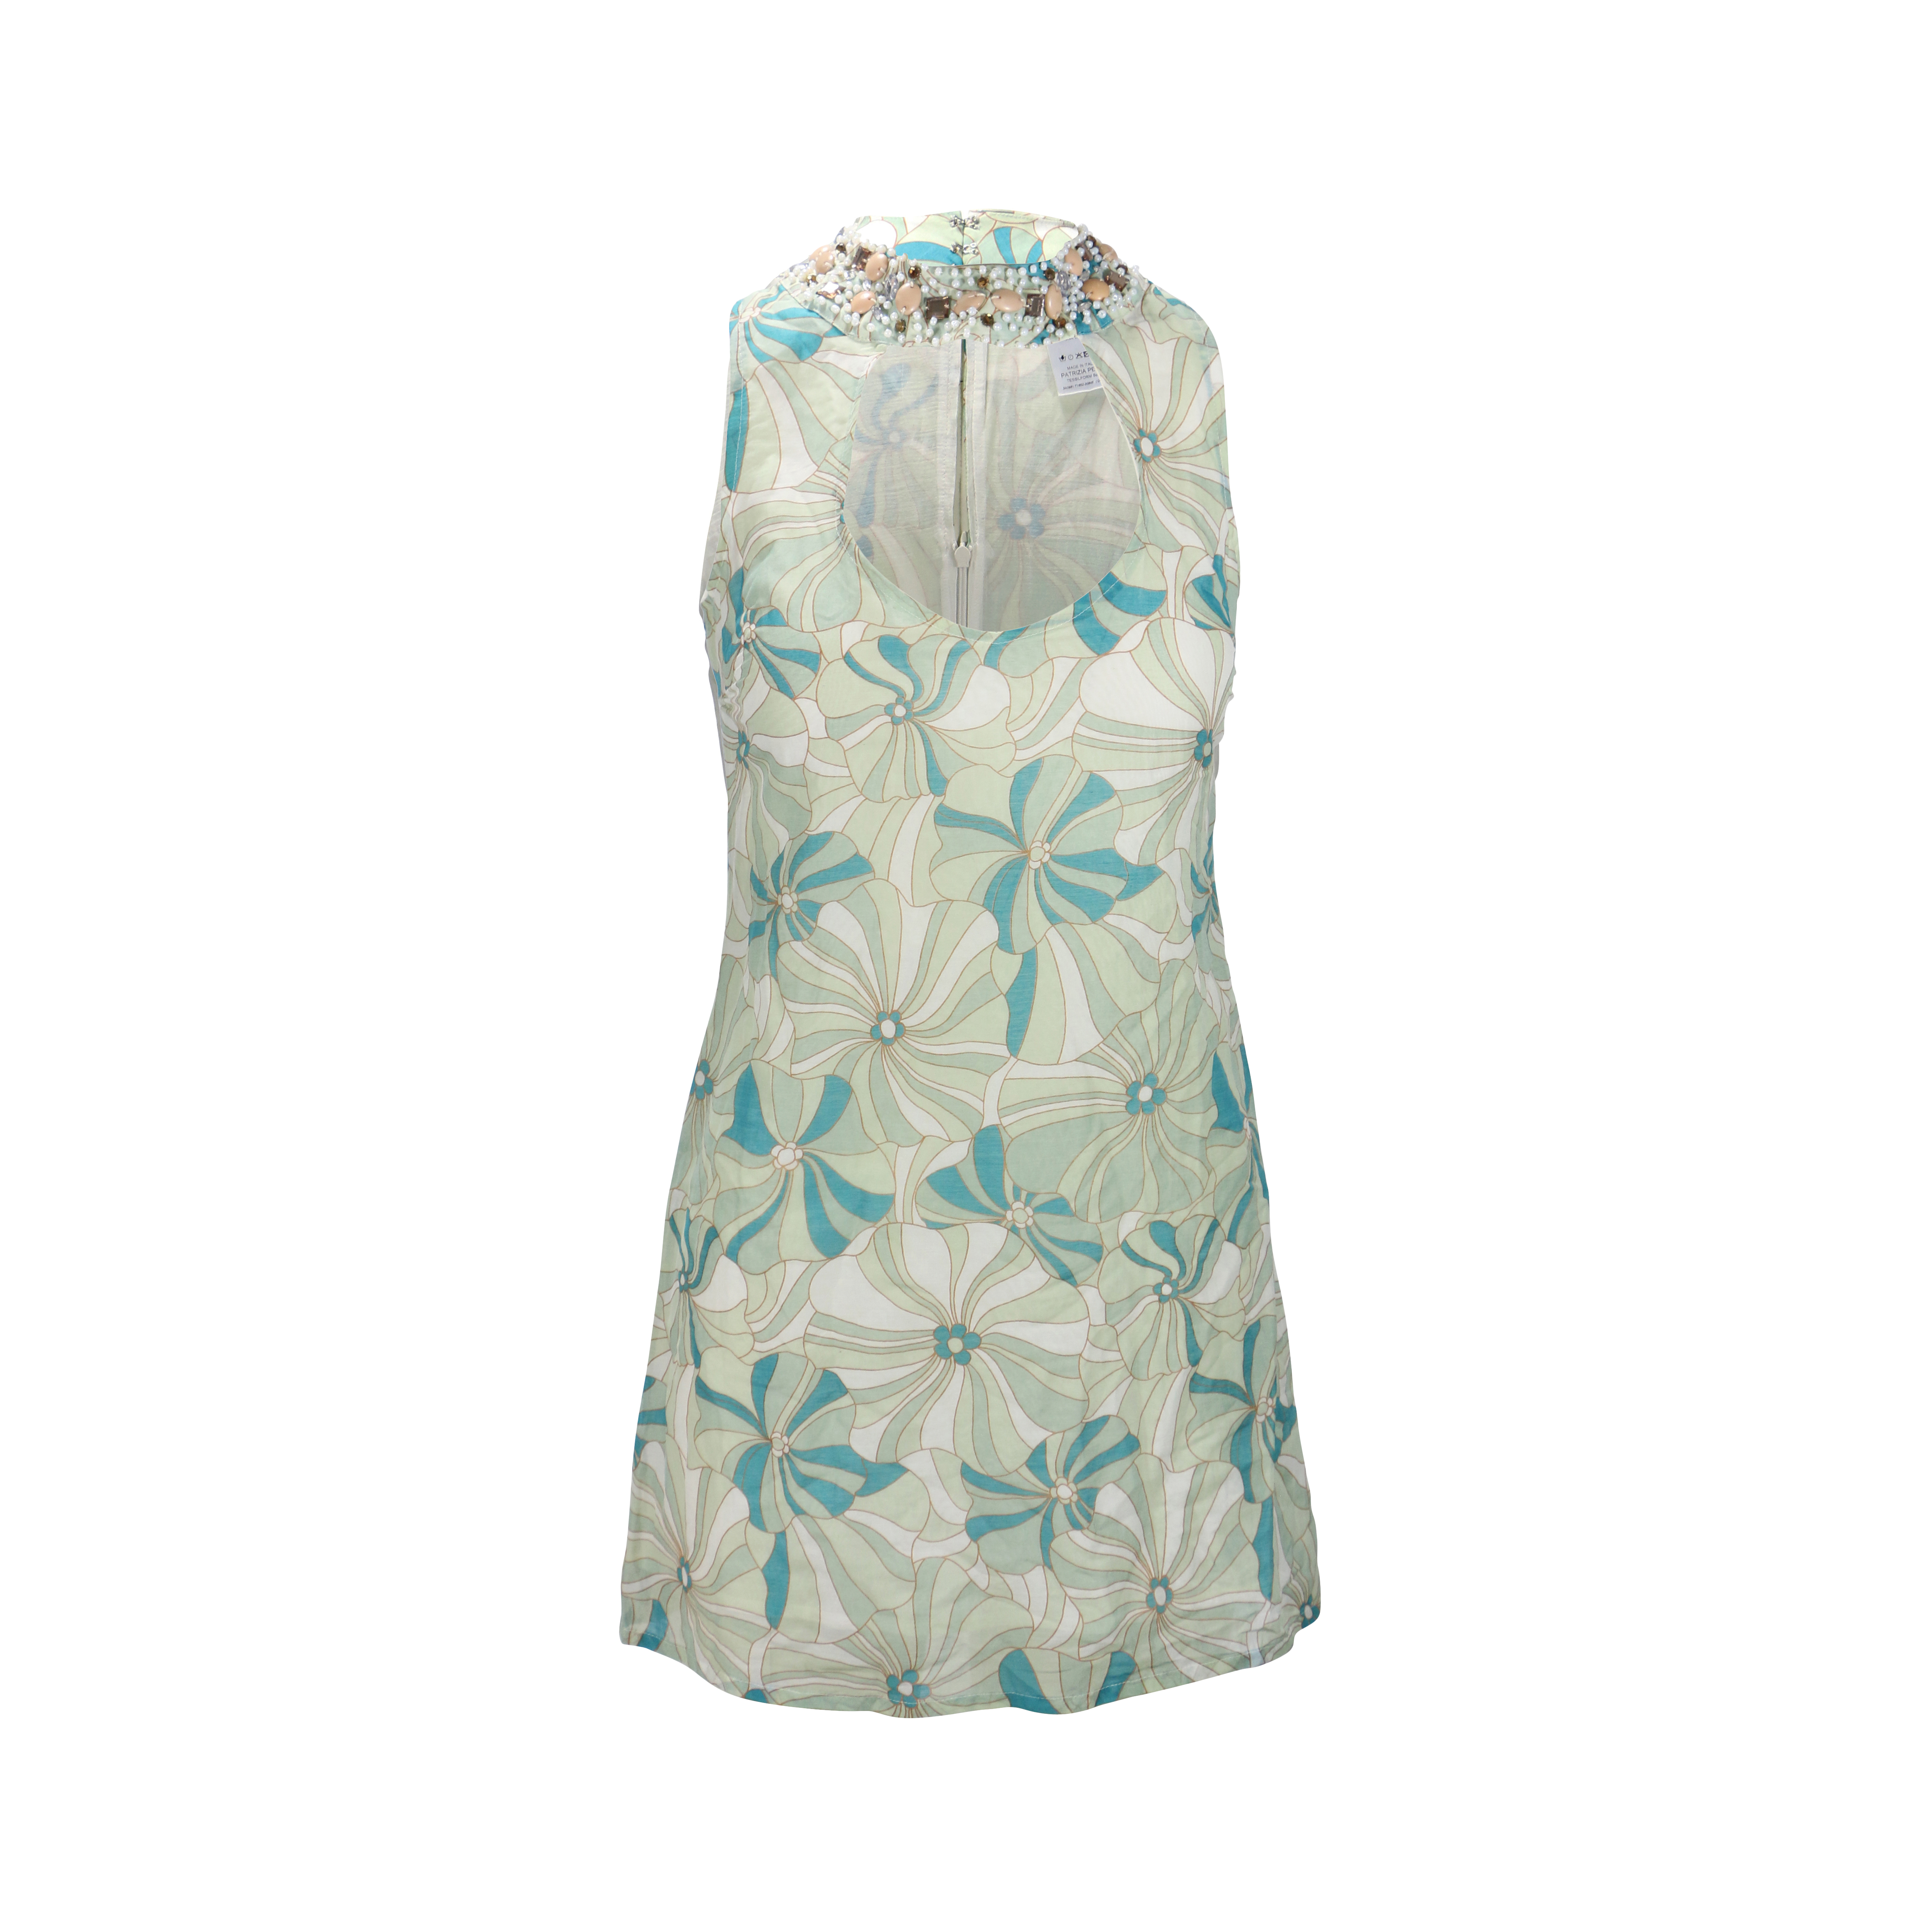 4cc314b25d Authentic Second Hand Patrizia Pepe Floral Cut Out Dress (PSS-262-00010) -  THE FIFTH COLLECTION